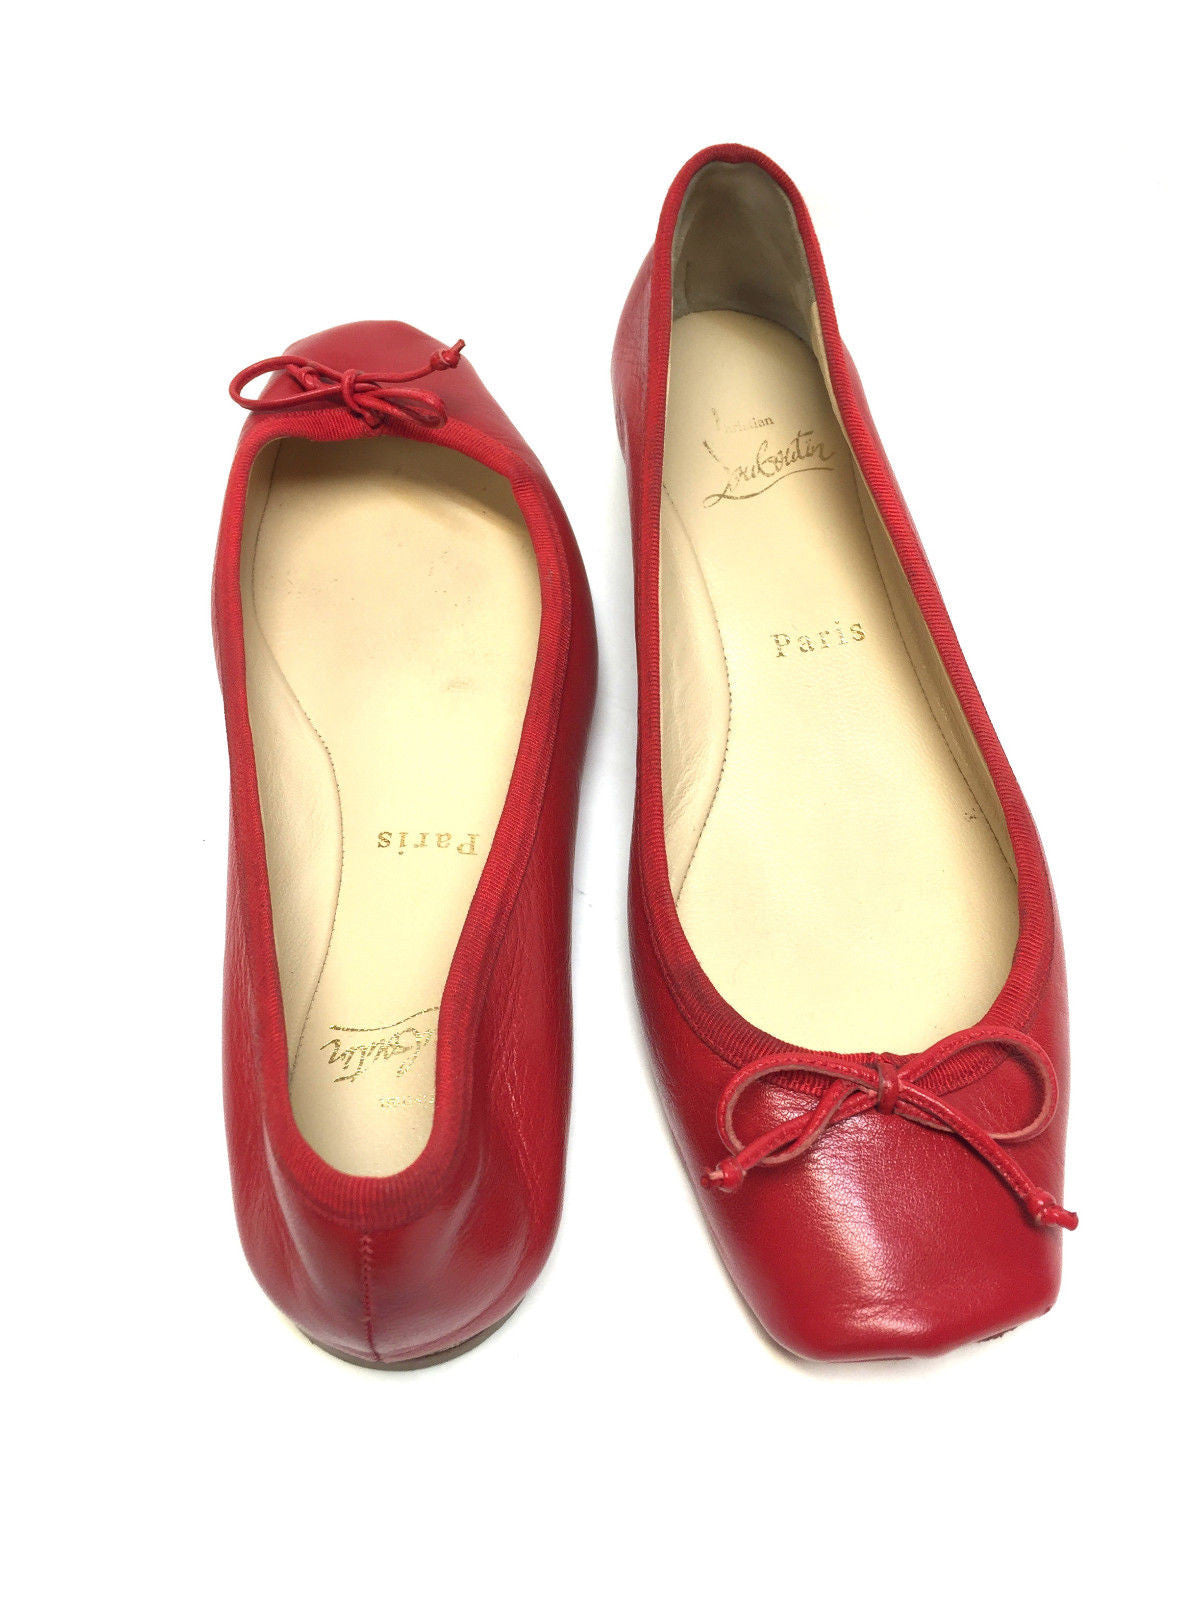 a74f304cdde CHRISTIAN LOUBOUTIN Red Leather Ballet Flats Shoes Size  37.5